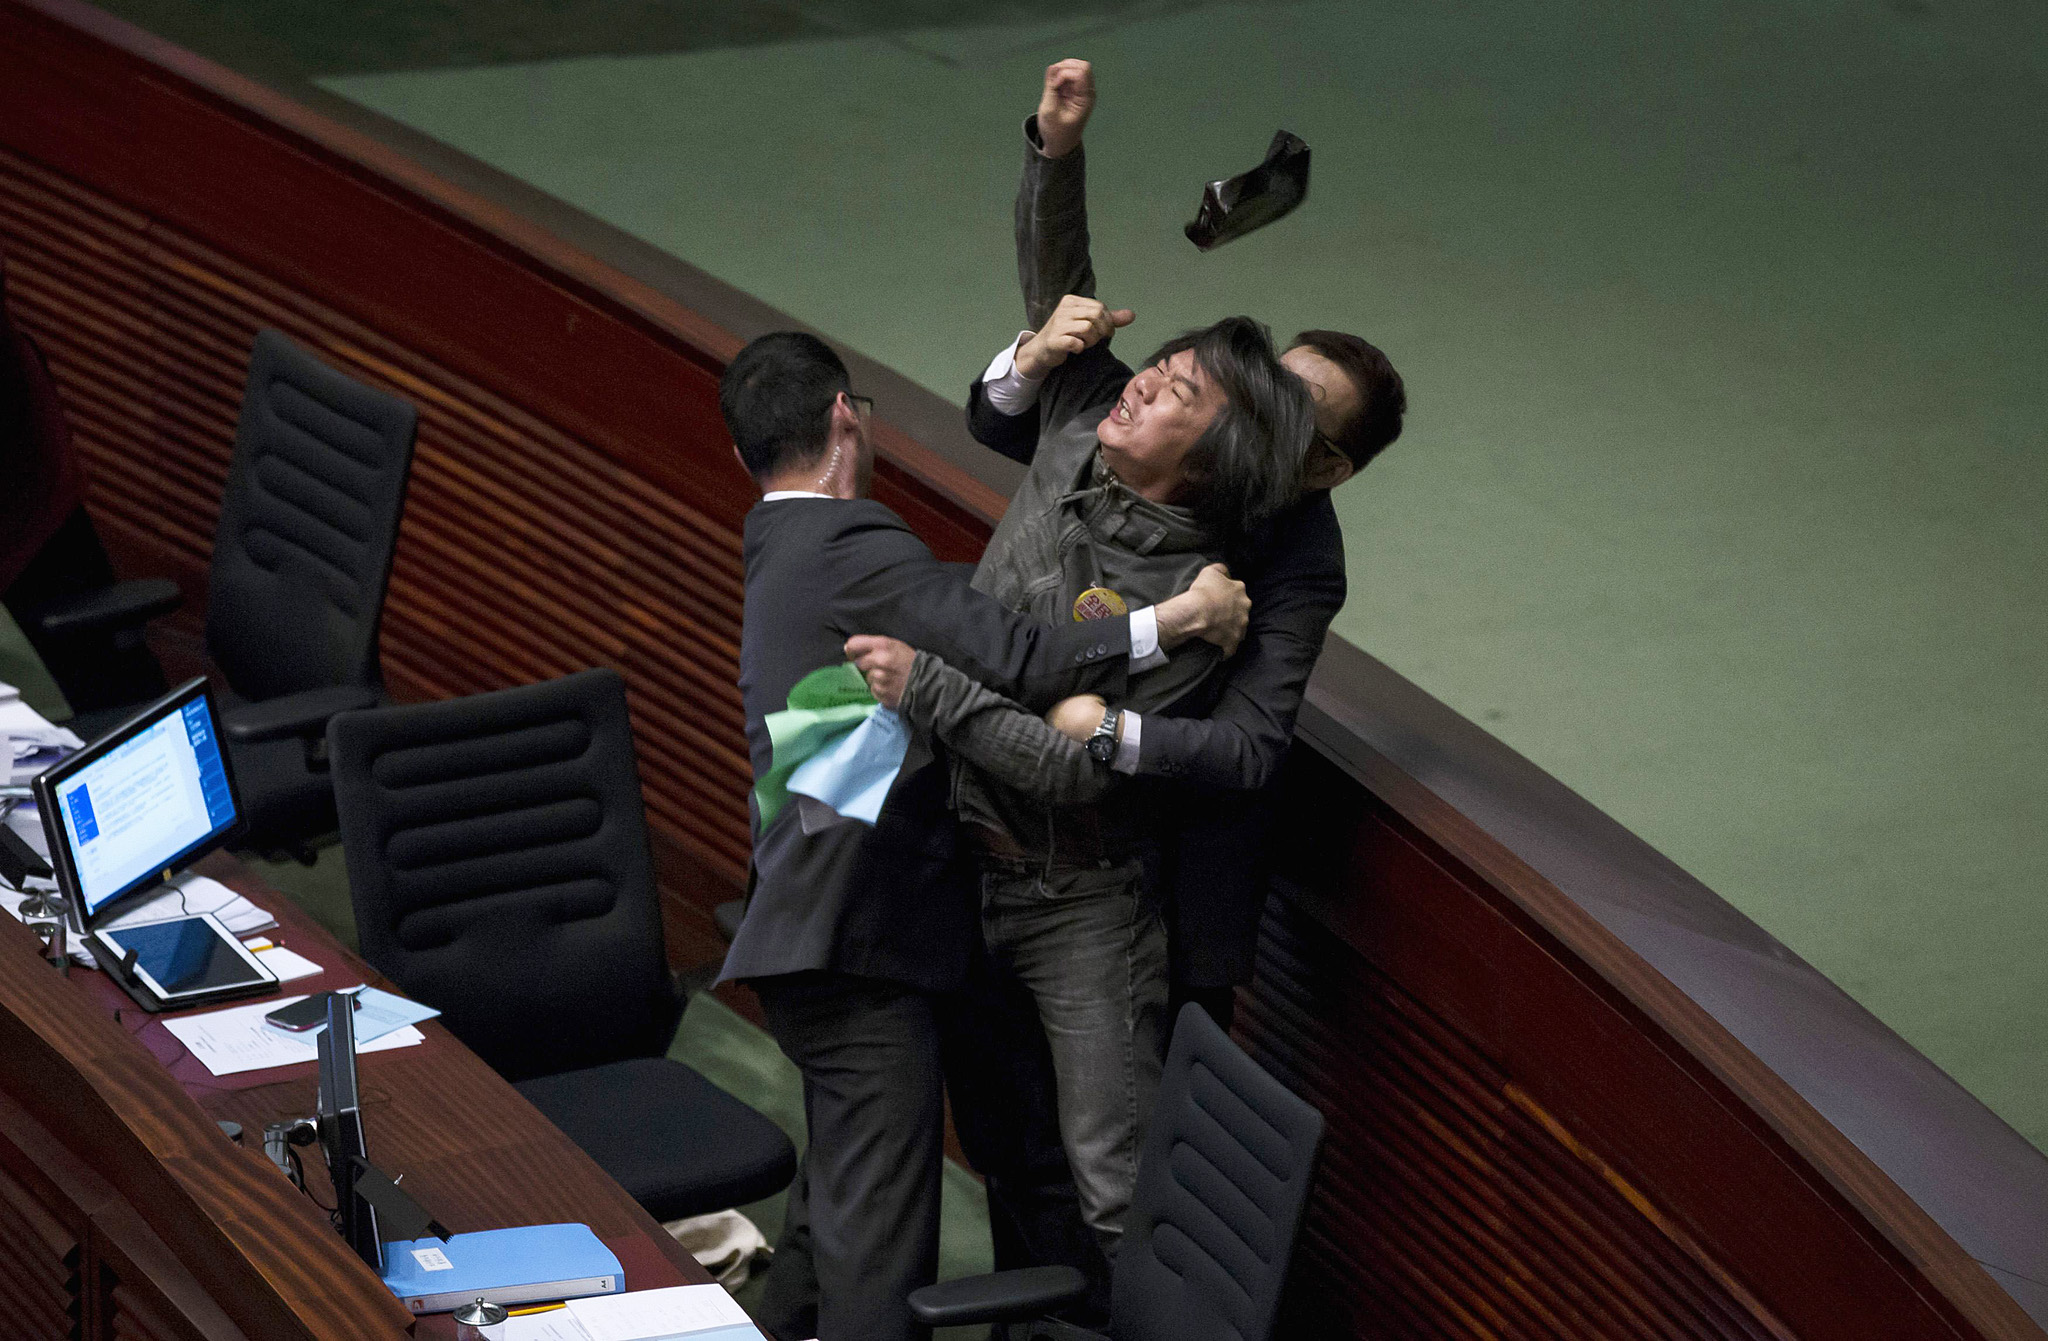 Pro-democracy lawmaker Leung Kwok-hung demands a universal retirement protection scheme during the annual budget report at the Legislative Council in Hong Kong...Pro-democracy lawmaker Leung Kwok-hung throws an object at Hong Kong's Financial Secretary John Tsang (not pictured) to demand a universal retirement protection scheme during the annual budget report at the Legislative Council in Hong Kong February 25, 2015. Hong Kong announced measures totalling HK$290 million ($37 million) on Wednesday to help businesses hit by more than two months of pro-democracy protests as the government seeks to rebuild confidence in the Asia financial centre. REUTERS/Tyrone Siu (CHINA - Tags: POLITICS BUSINESS CIVIL UNREST TPX IMAGES OF THE DAY)